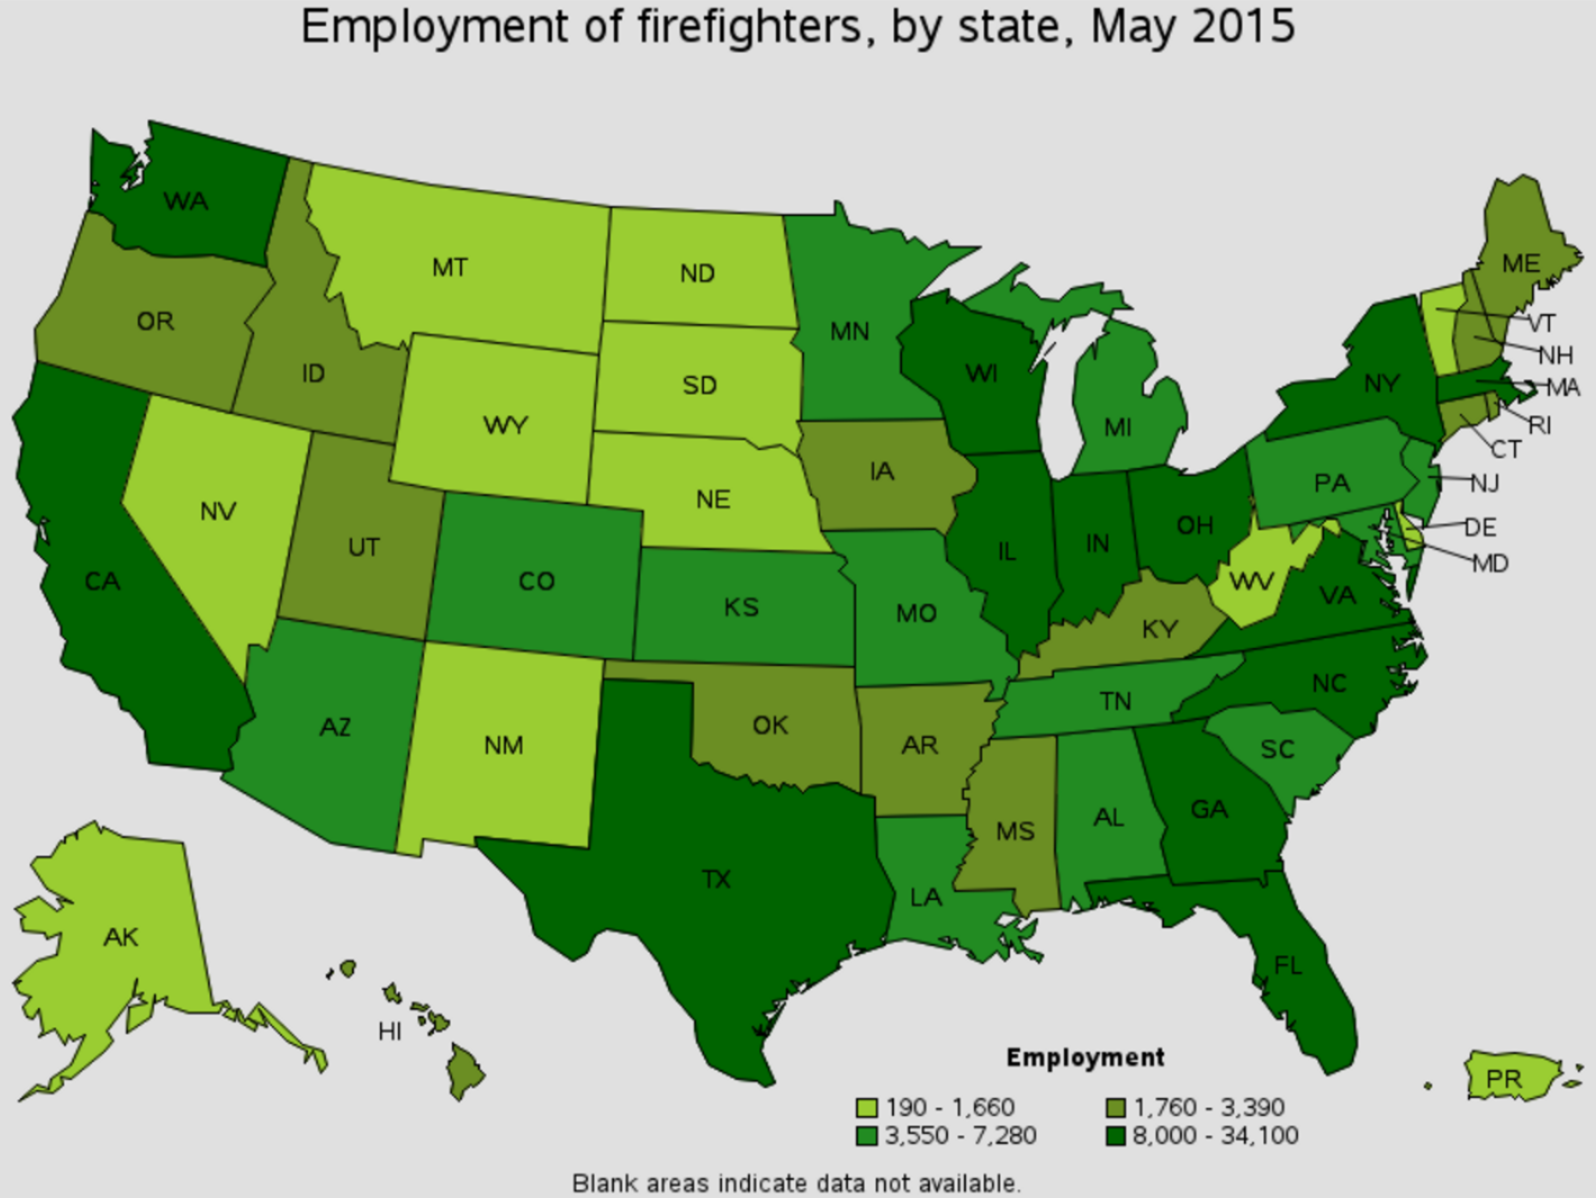 firefighter job outlook by state Wilder Vermont